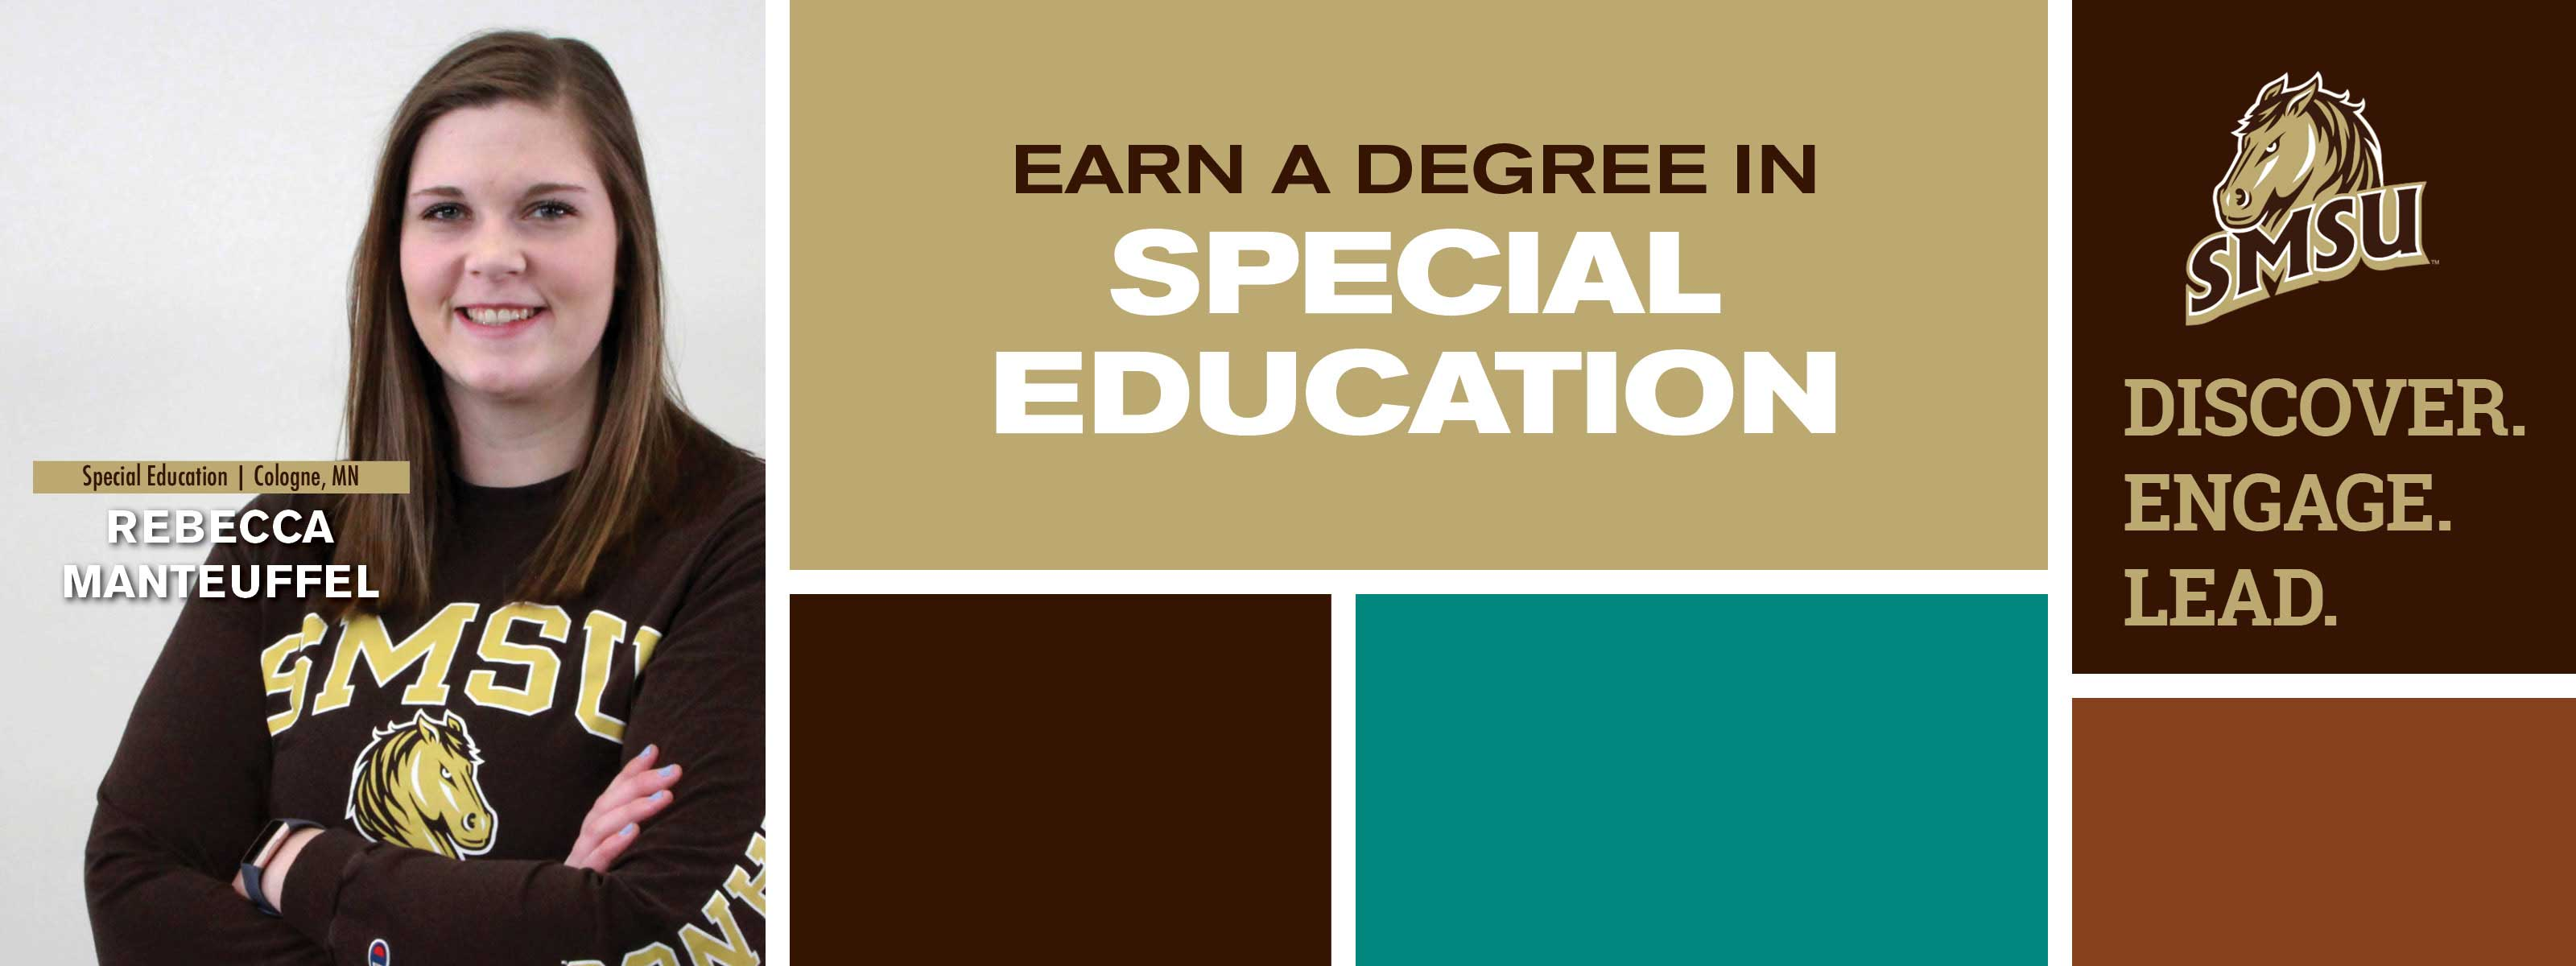 Earn a degree in Special Education - Discover. Engage. Lead.